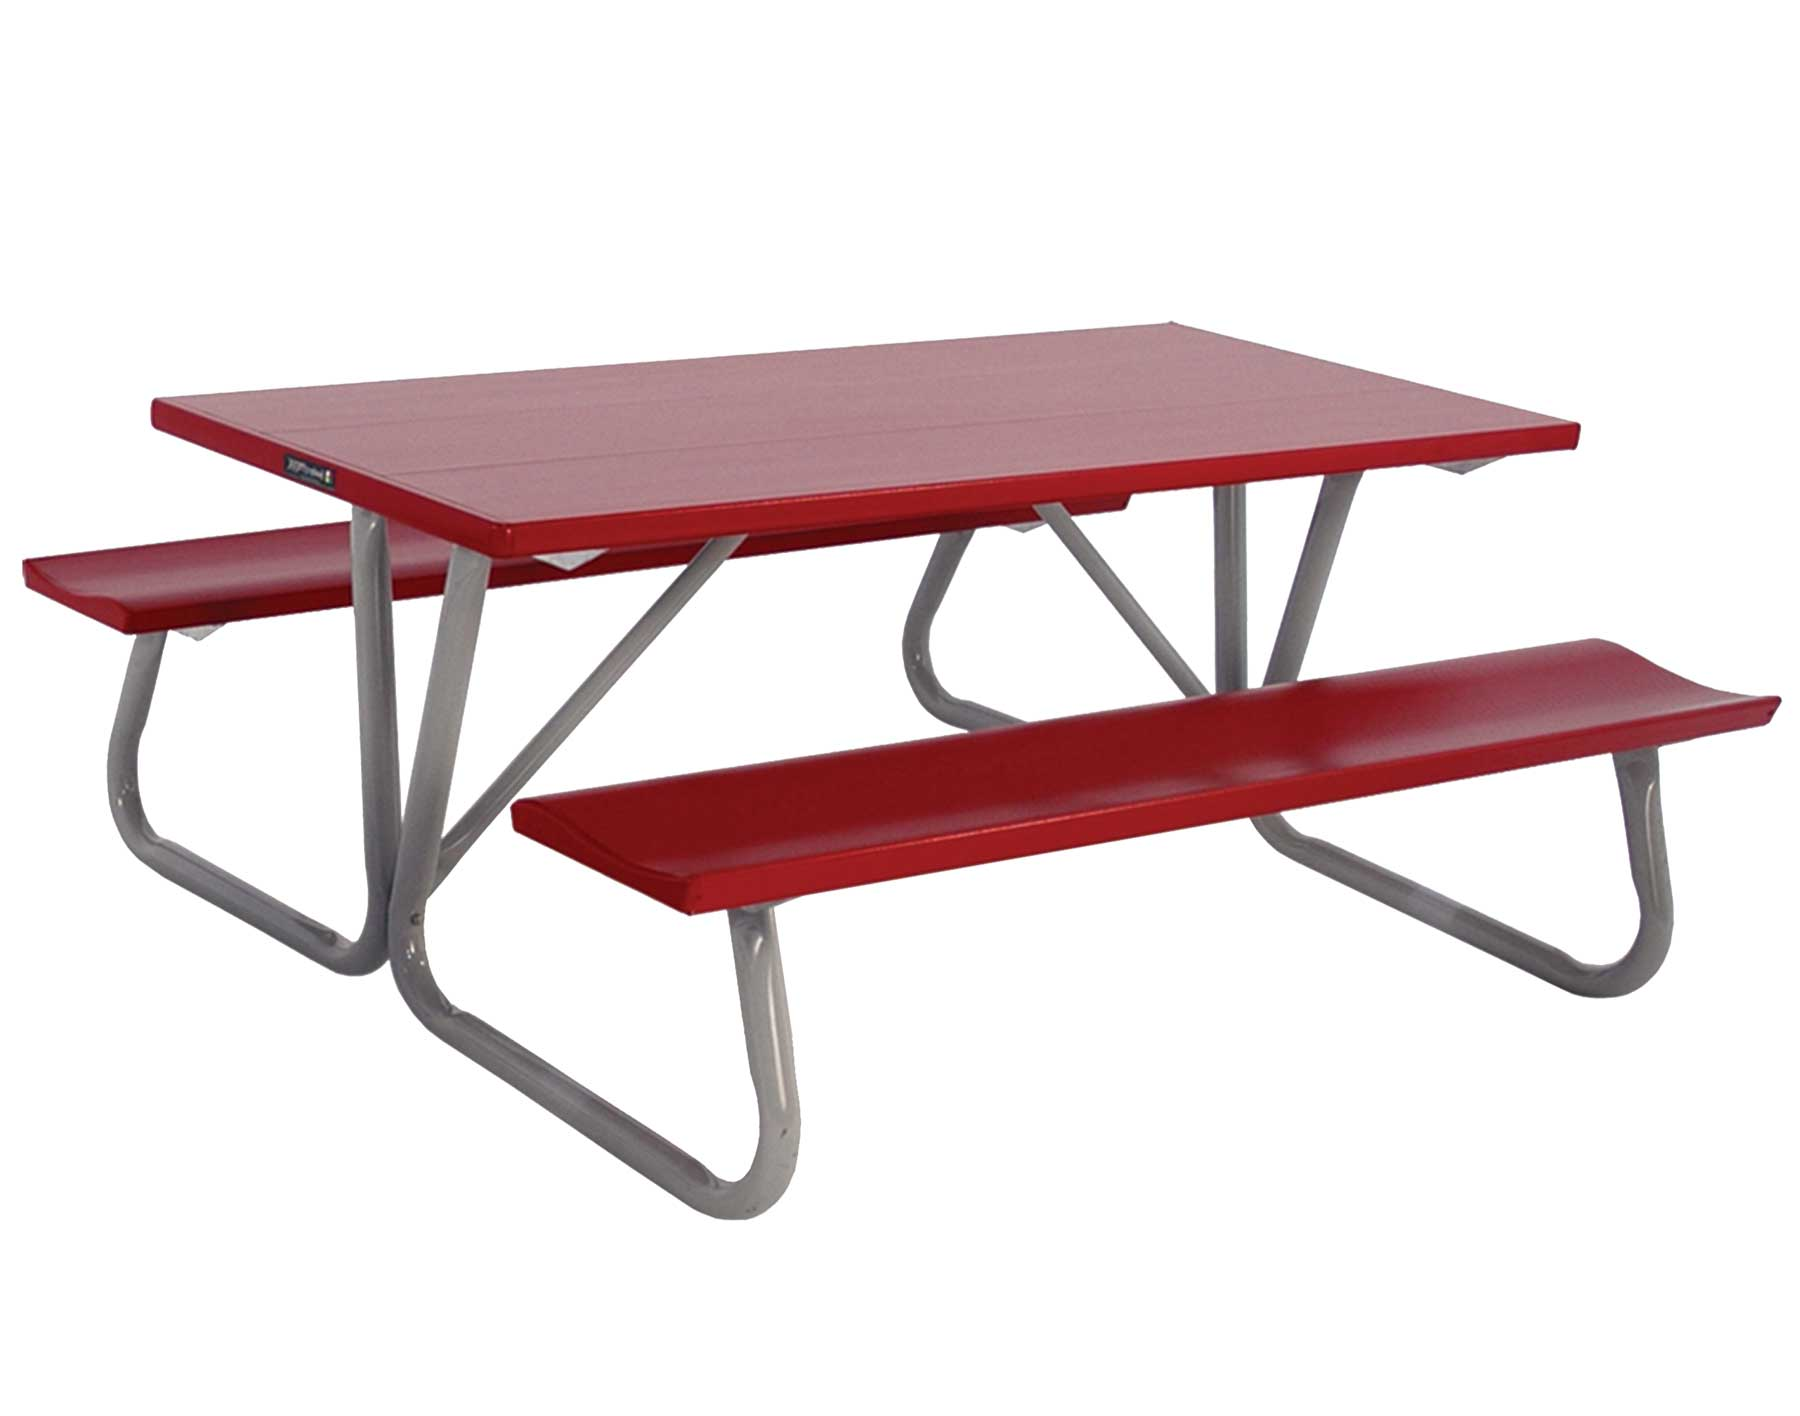 Picnic Sets For 6 6' Folding Picnic Table